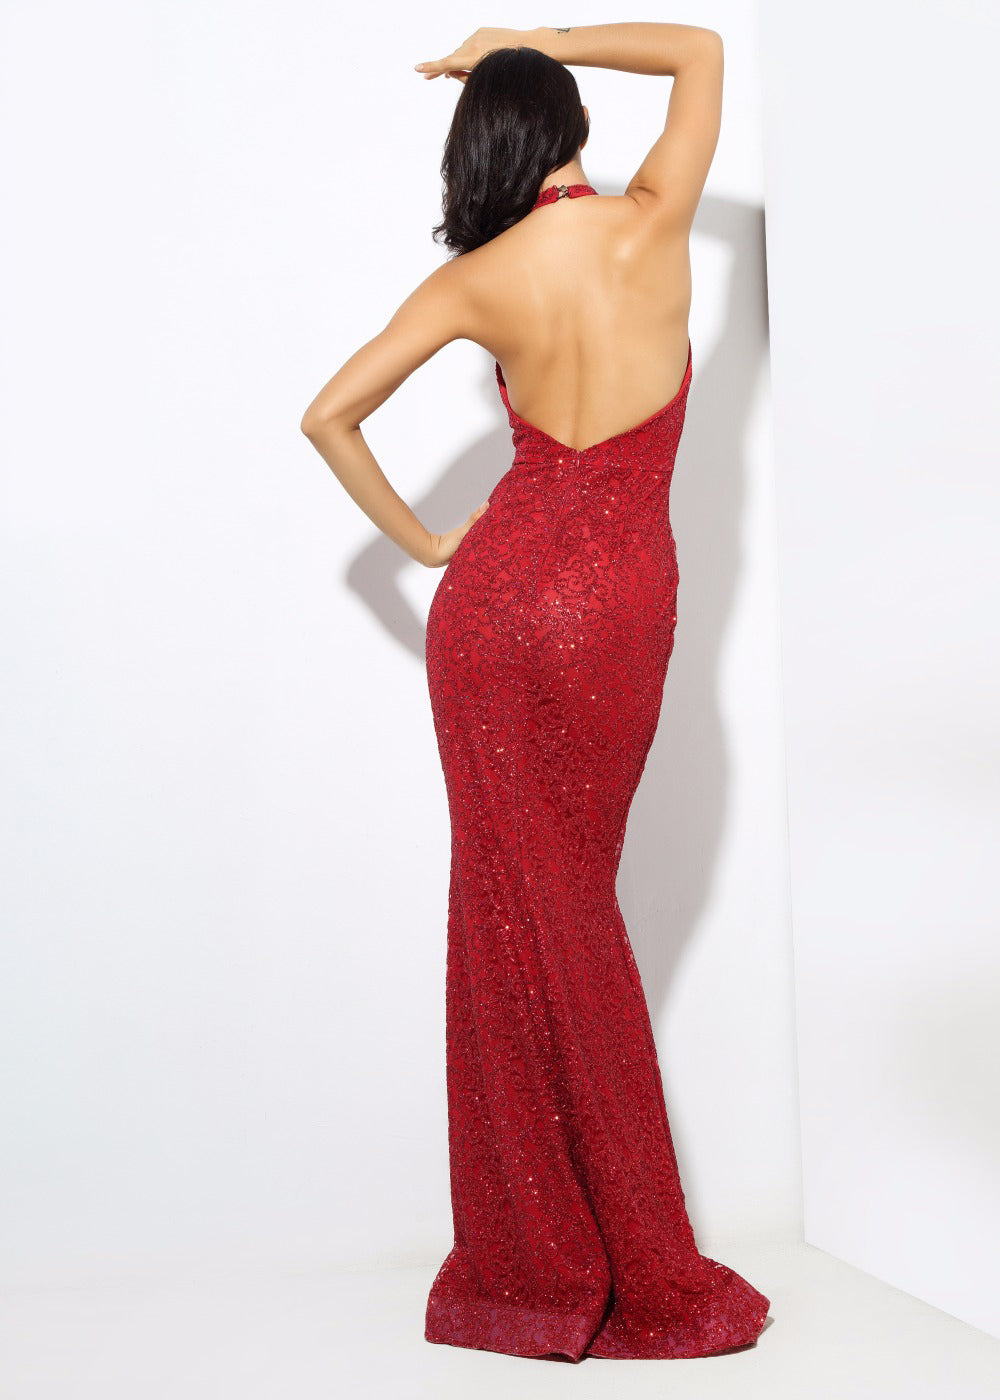 'Anguilla' Red Maxi Dress